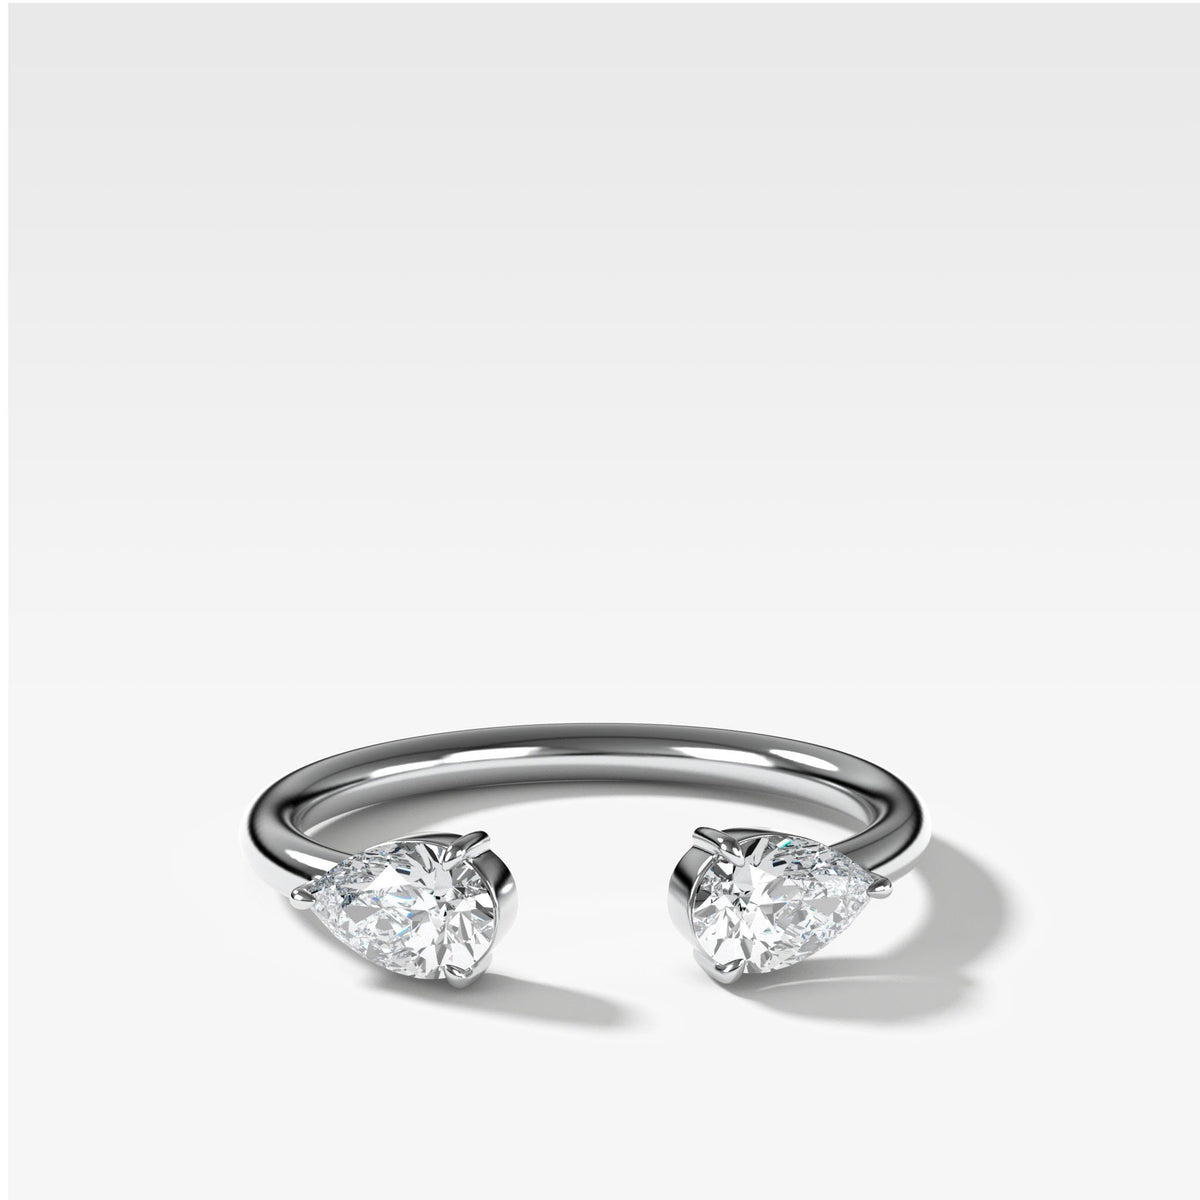 Twin Pear Diamond Finger Cuff in White Gold by Good Stone